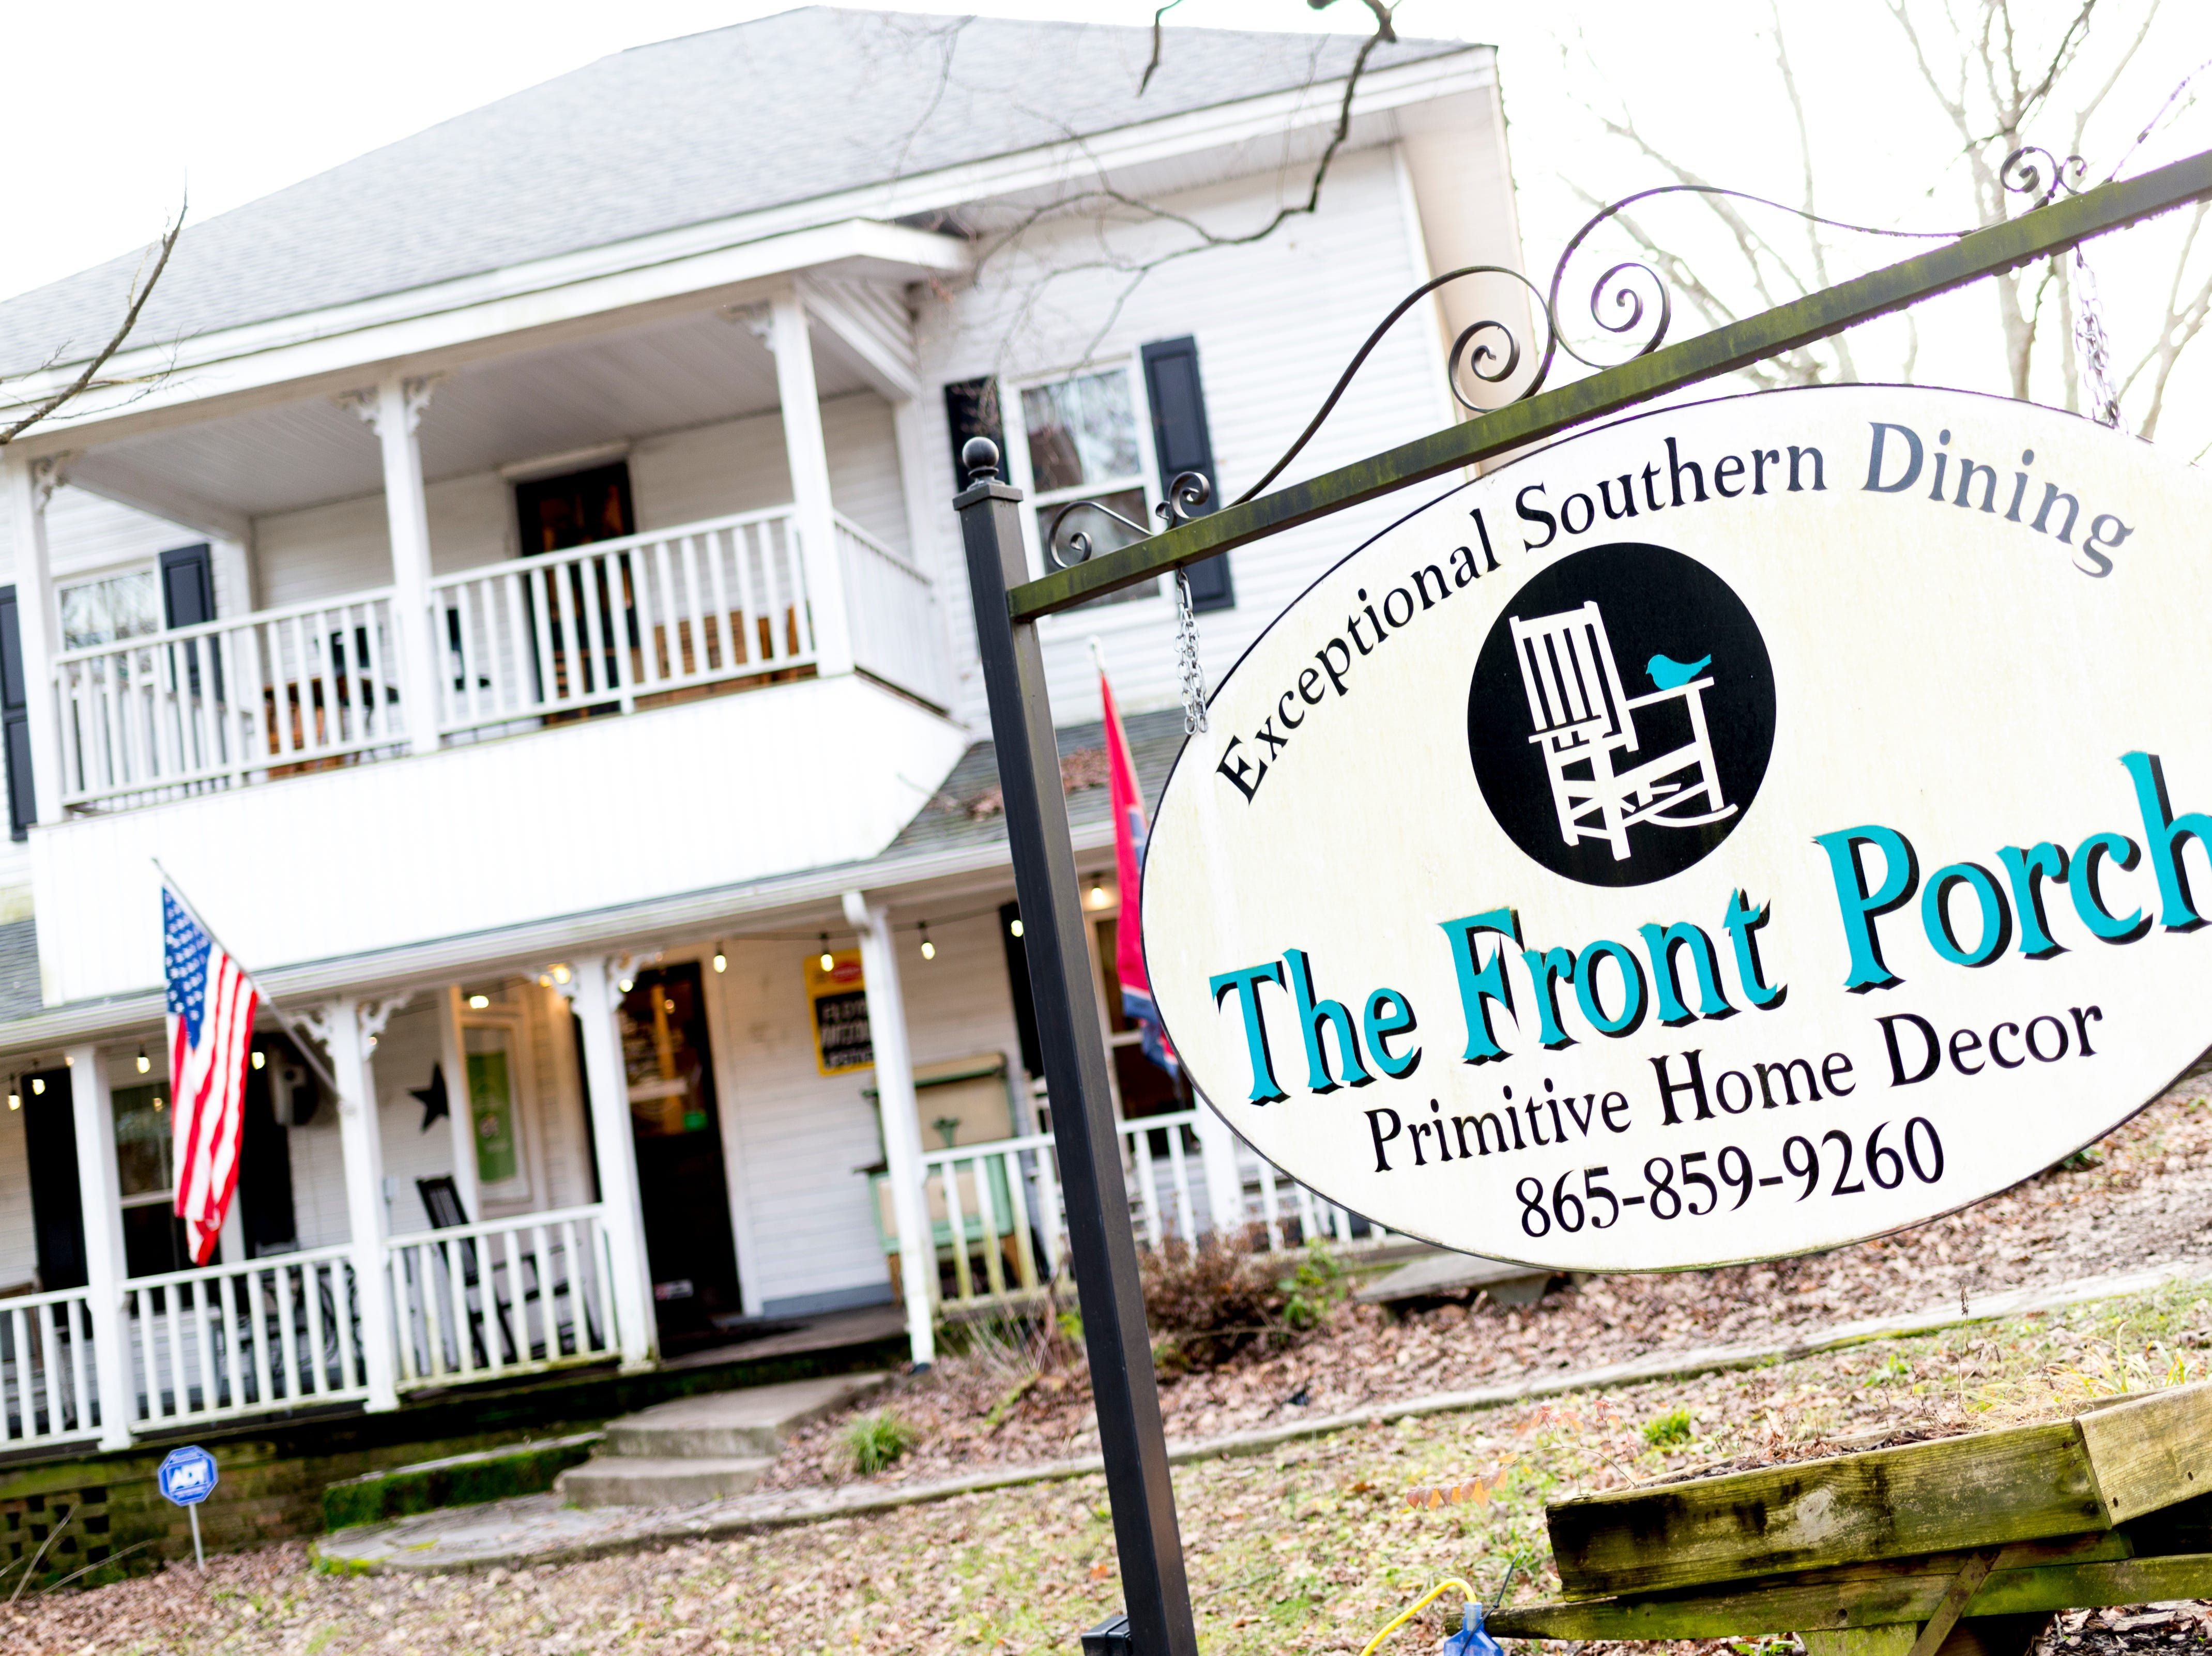 A street view of The Front Porch Restaurant in Powell, Tennessee on Saturday, December 29, 2018. For five years, owner Bart Elkins has worked to revive that experience of the front porch being used as the focus for family and friends.